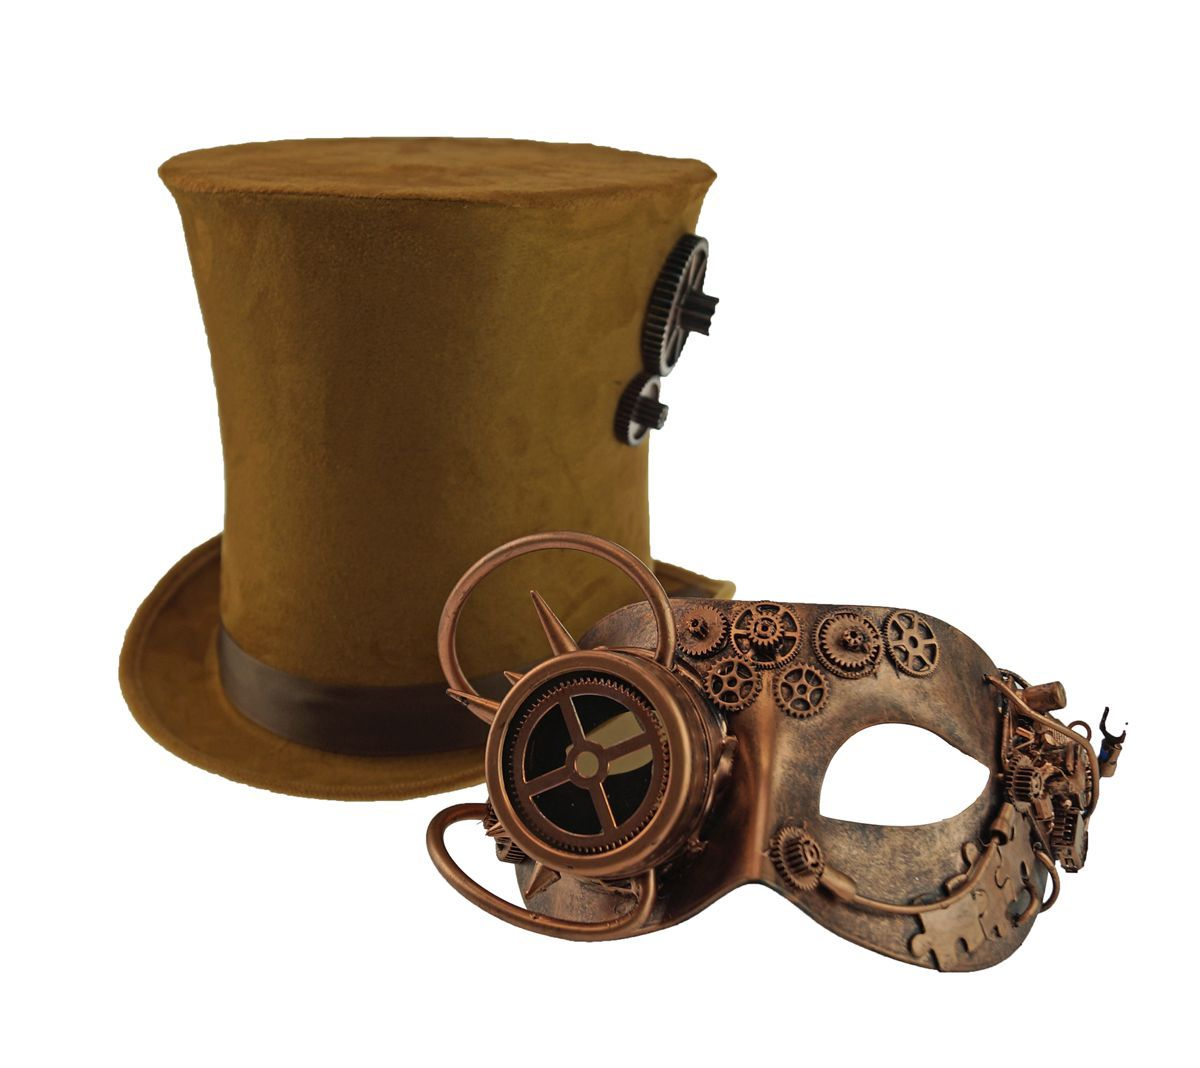 New High Quality Copper Steampunk Costume Mask And Hat Set